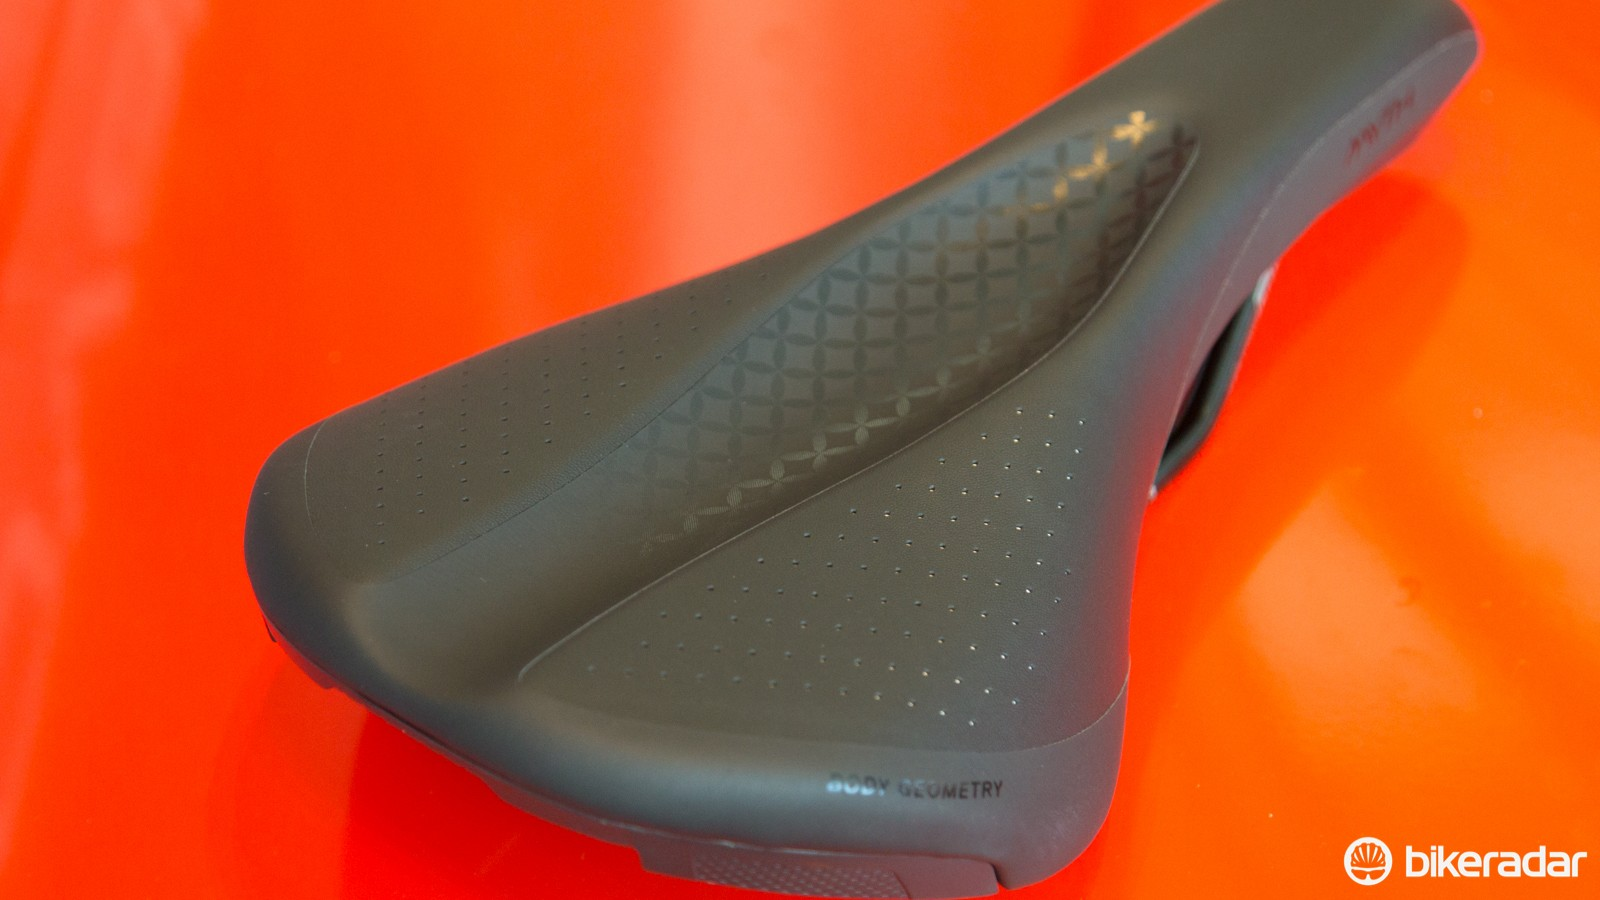 The Body Geometry Groove-V cutout is, says Specialized, a medically tested piece of design